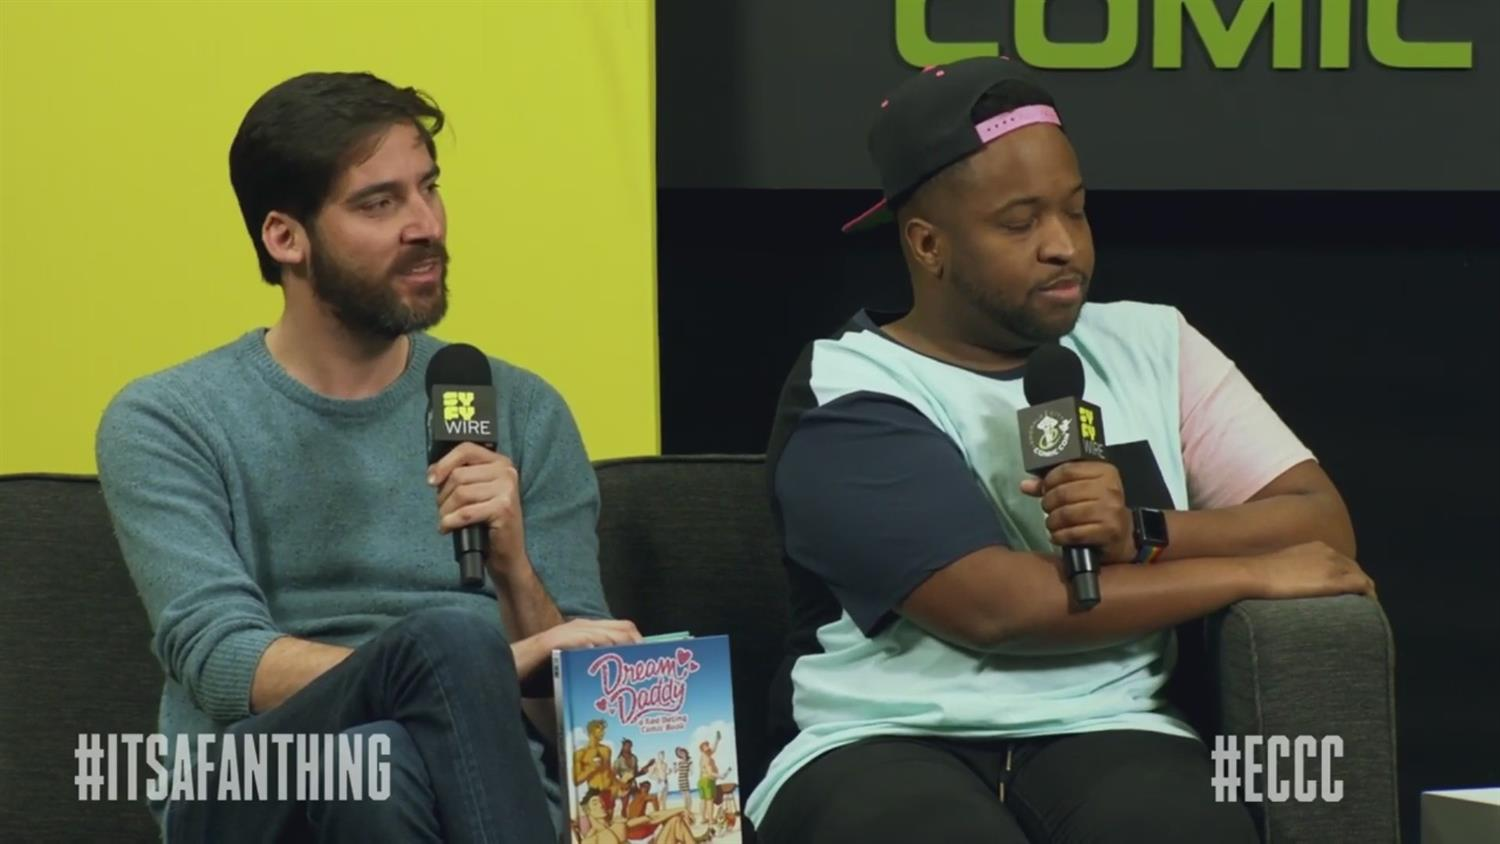 Hunt For A Hot Daddy with Dream Daddy (ECCC 2019)